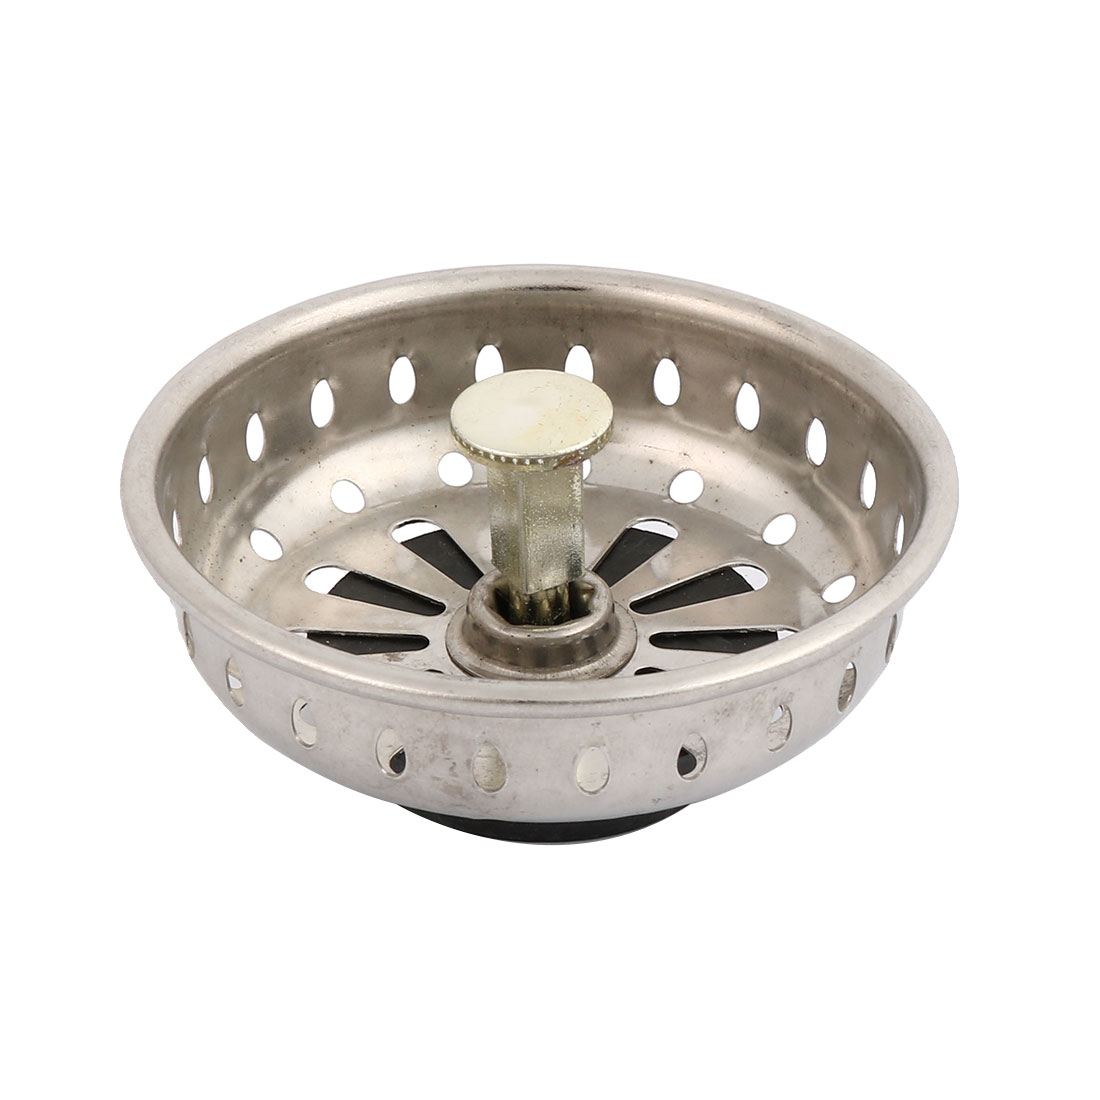 Kitchen Sink Metal Round Strainers Stopper Basin Drainer Hair Stopper